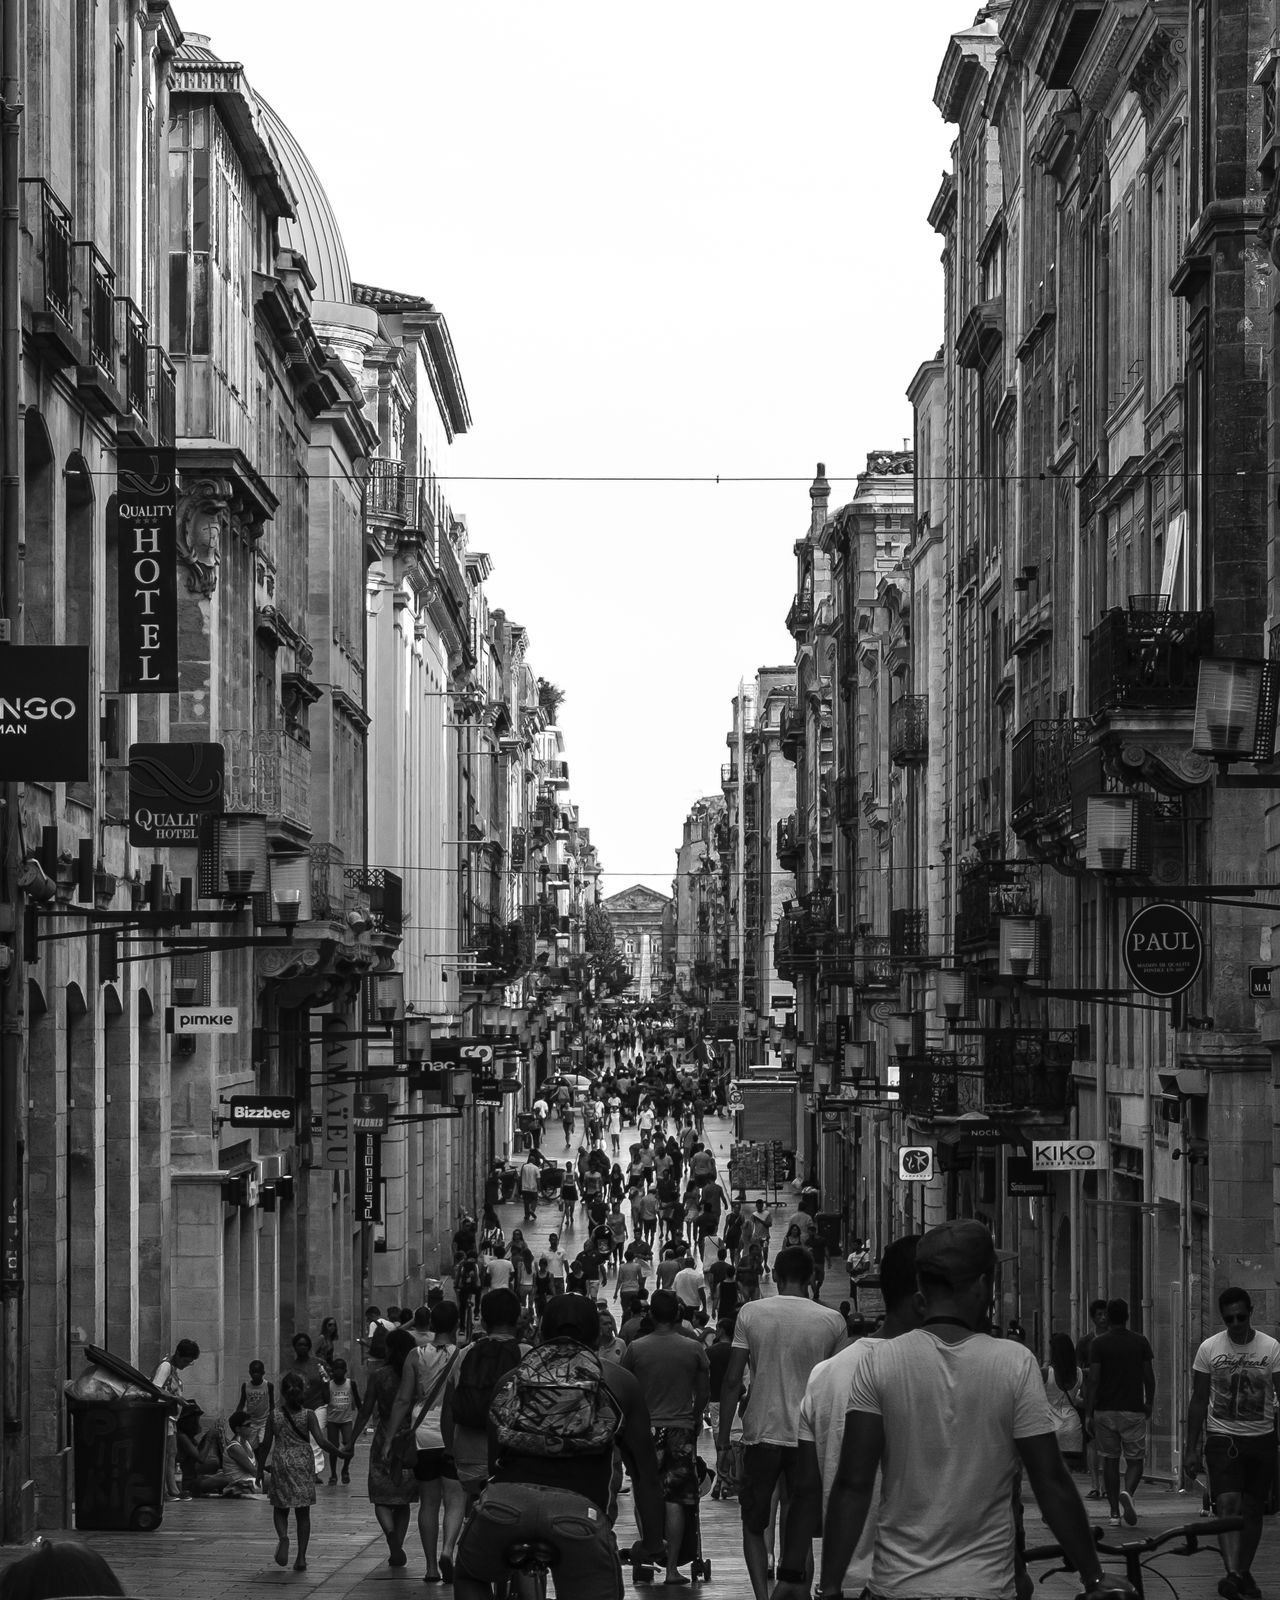 Architecture Blackandwhite Bordeaux Building Exterior Built Structure City Everyday Lives EyeEm EyeEm Best Shots EyeEm Gallery France Holiday Large Group Of People Lifestyle Outdoors Real People Shopping Shopping Street This Week On Eyeem Tourism Tourist Tourist Attraction  Vacation Walking Walking Around The City